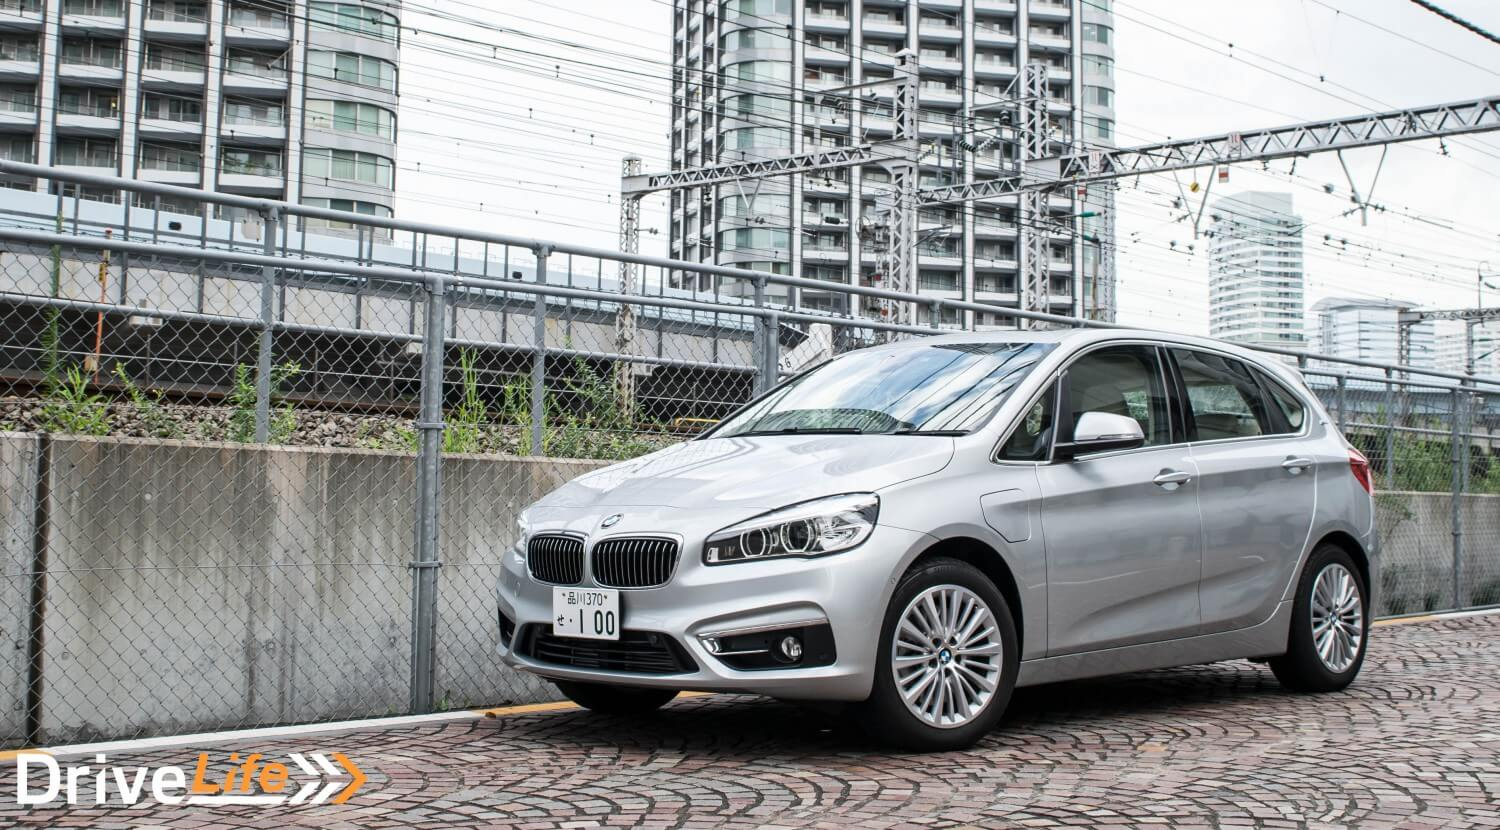 2016 bmw 225xe active tourer car review practically eco drivelife drivelife. Black Bedroom Furniture Sets. Home Design Ideas